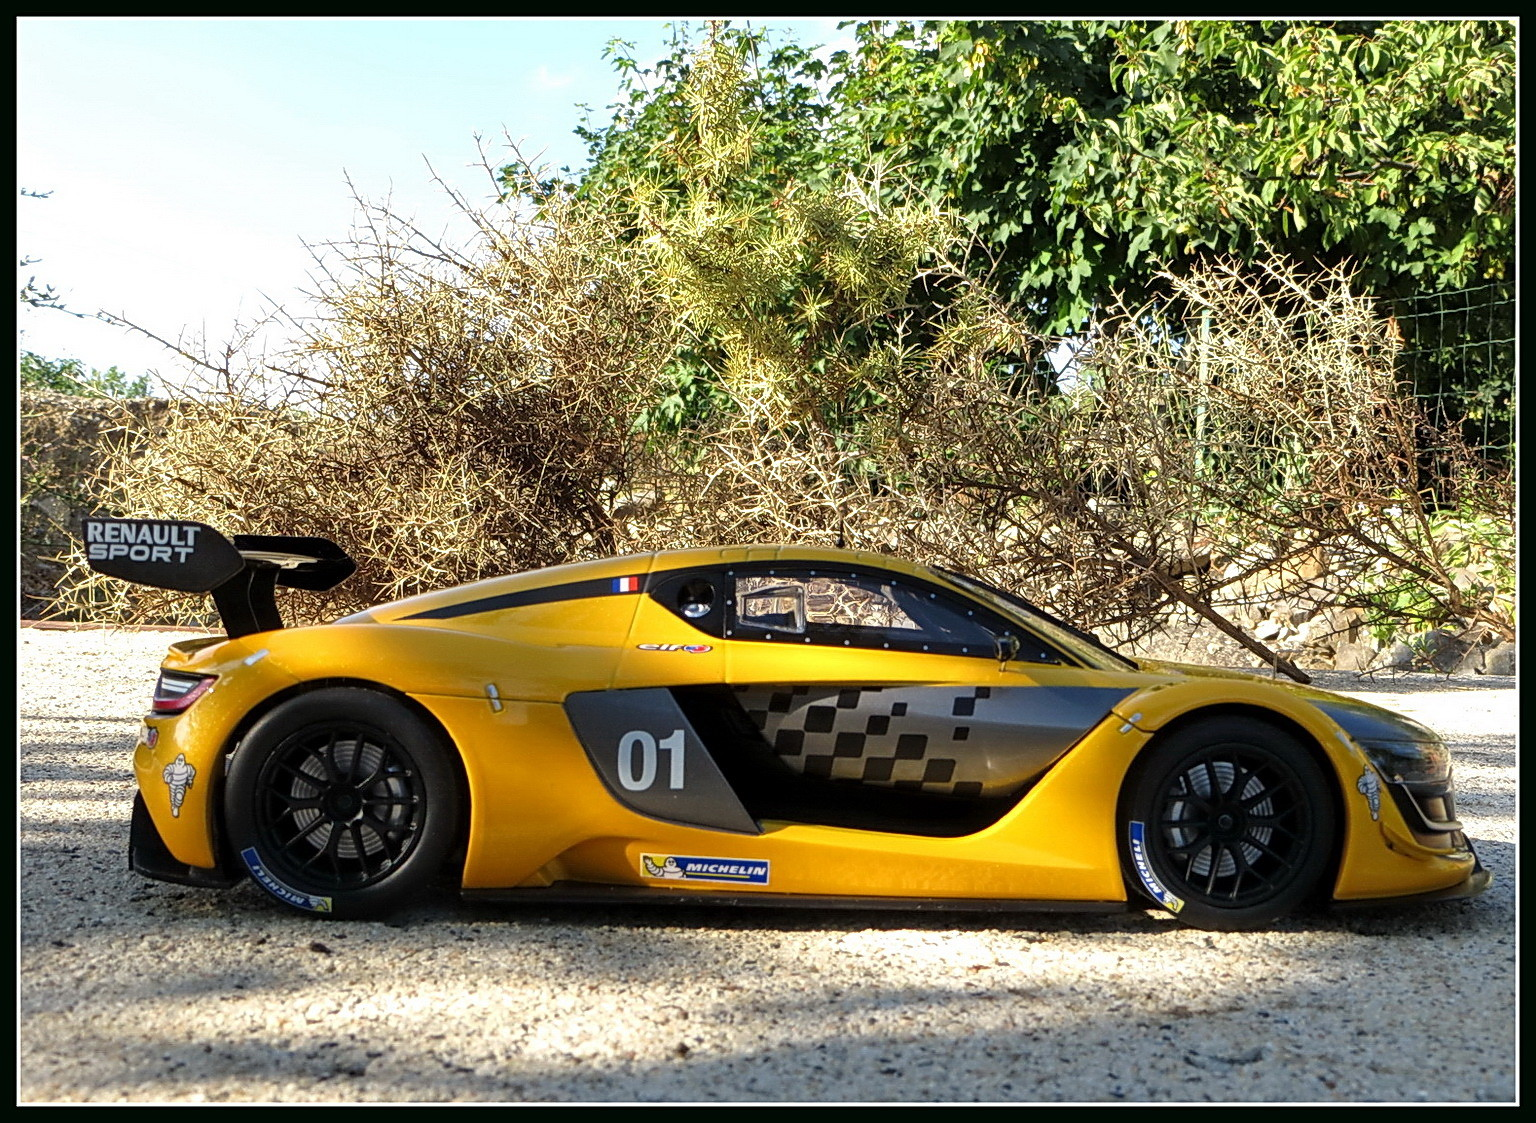 renault-rs 01-2015-27